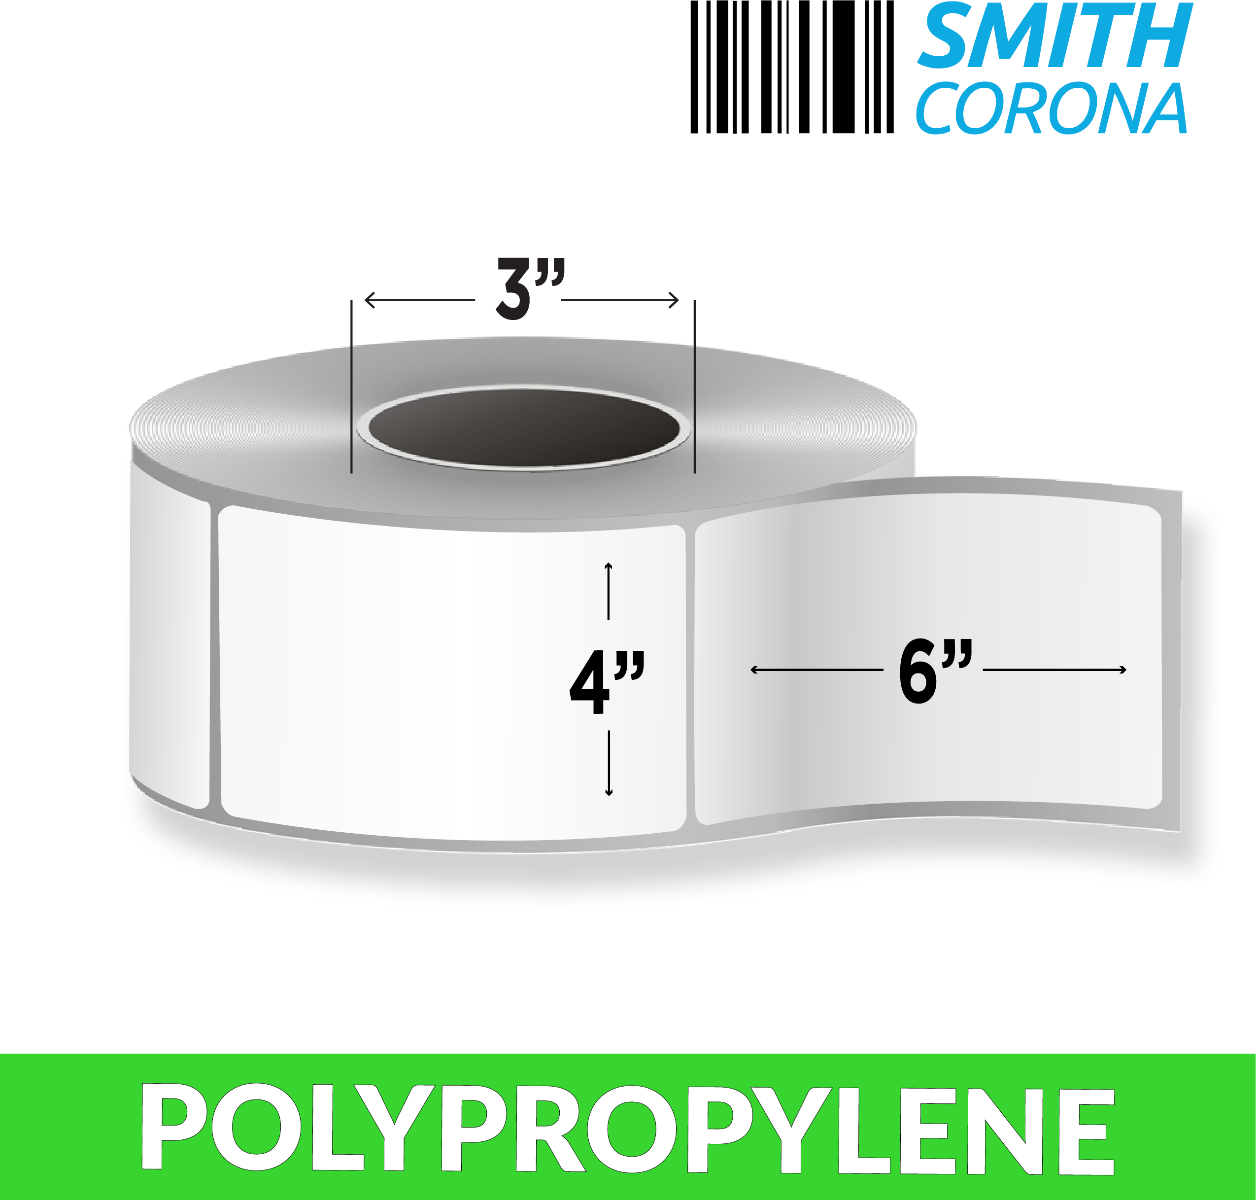 "4"" x 6"" Polypropylene - Thermal Transfer Labels - 3"" Core"